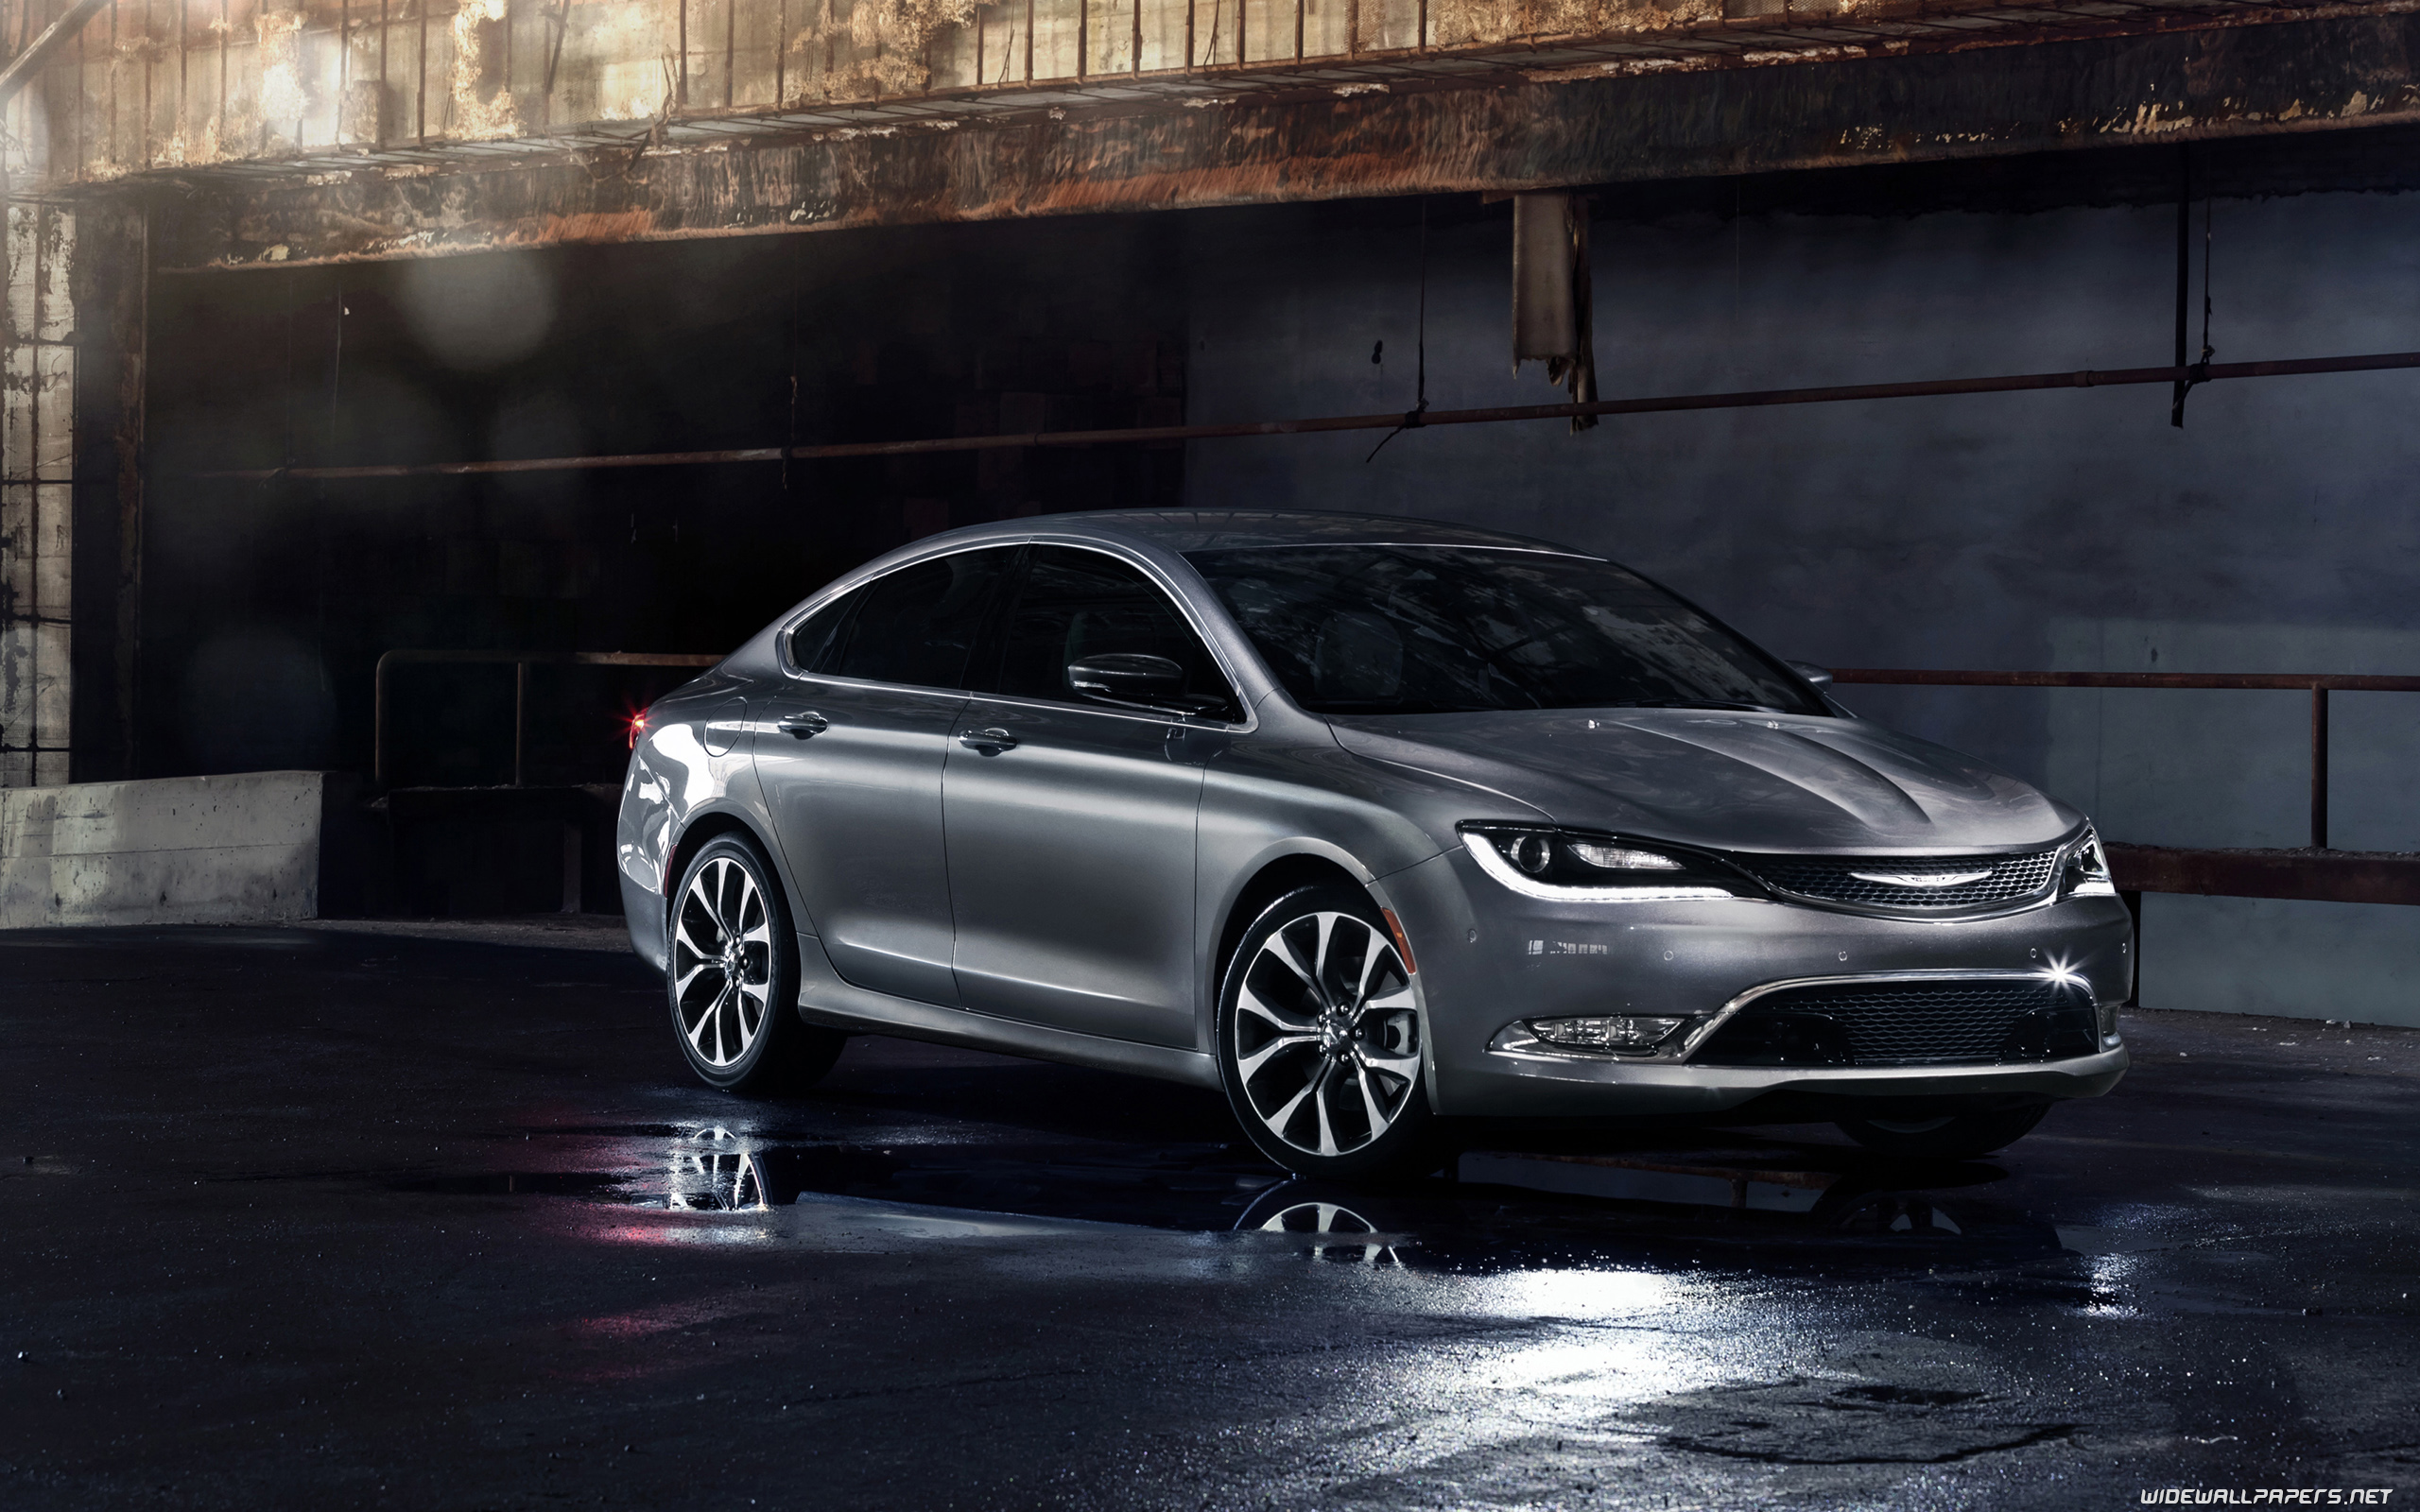 2560x1600 - Chrysler 200 Wallpapers 30